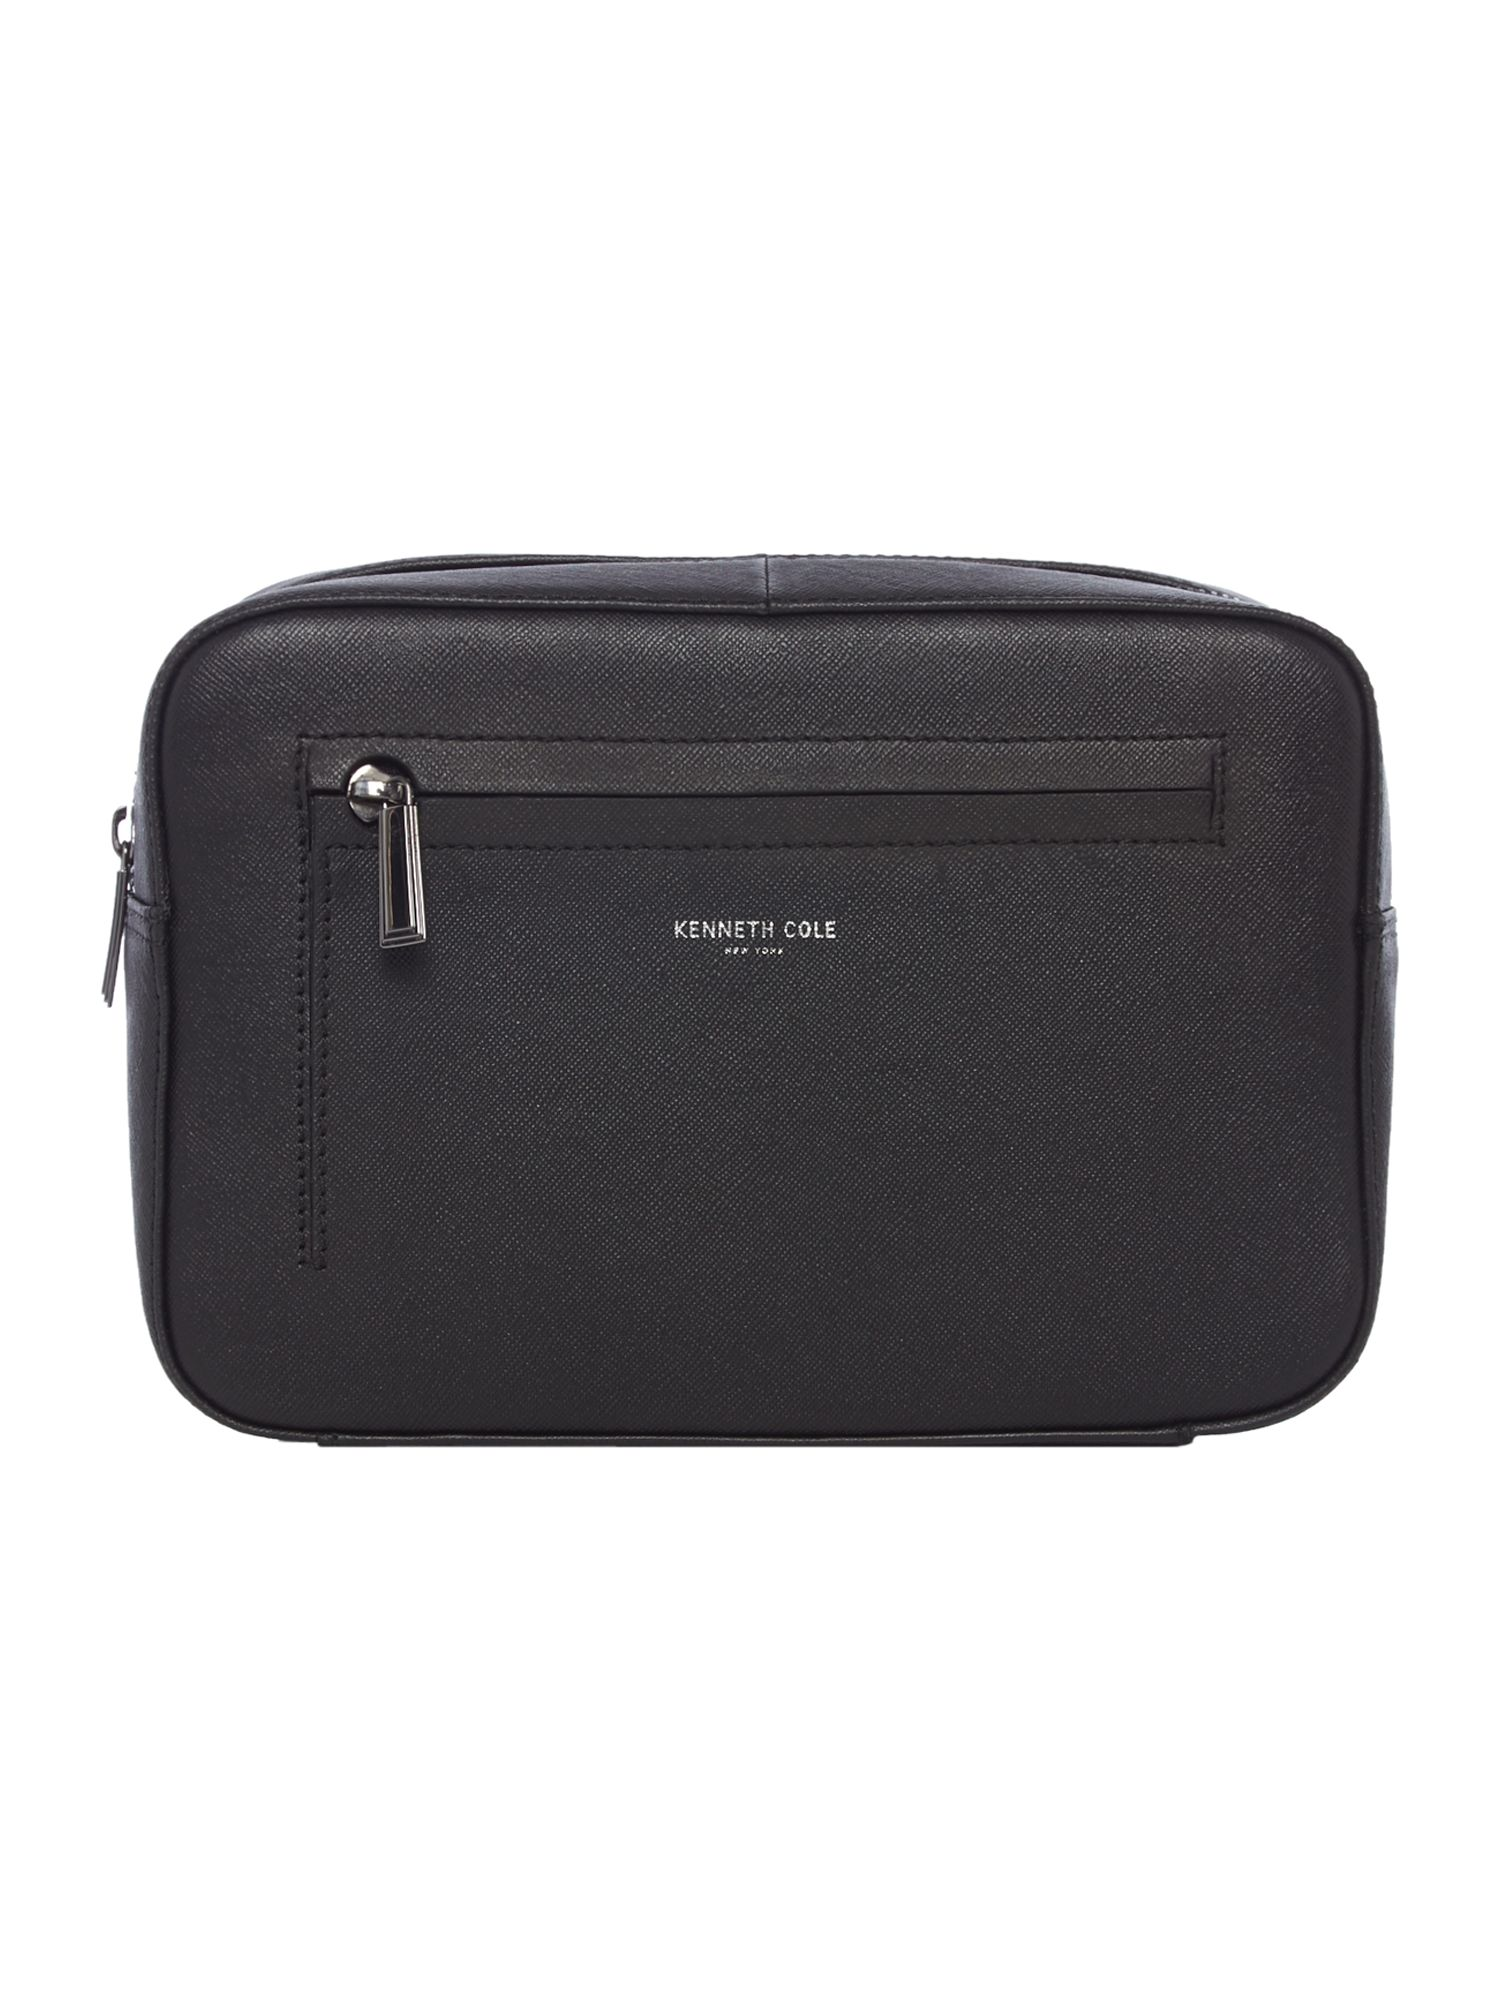 Kenneth Cole Saffiano Boxy Washbag, Black